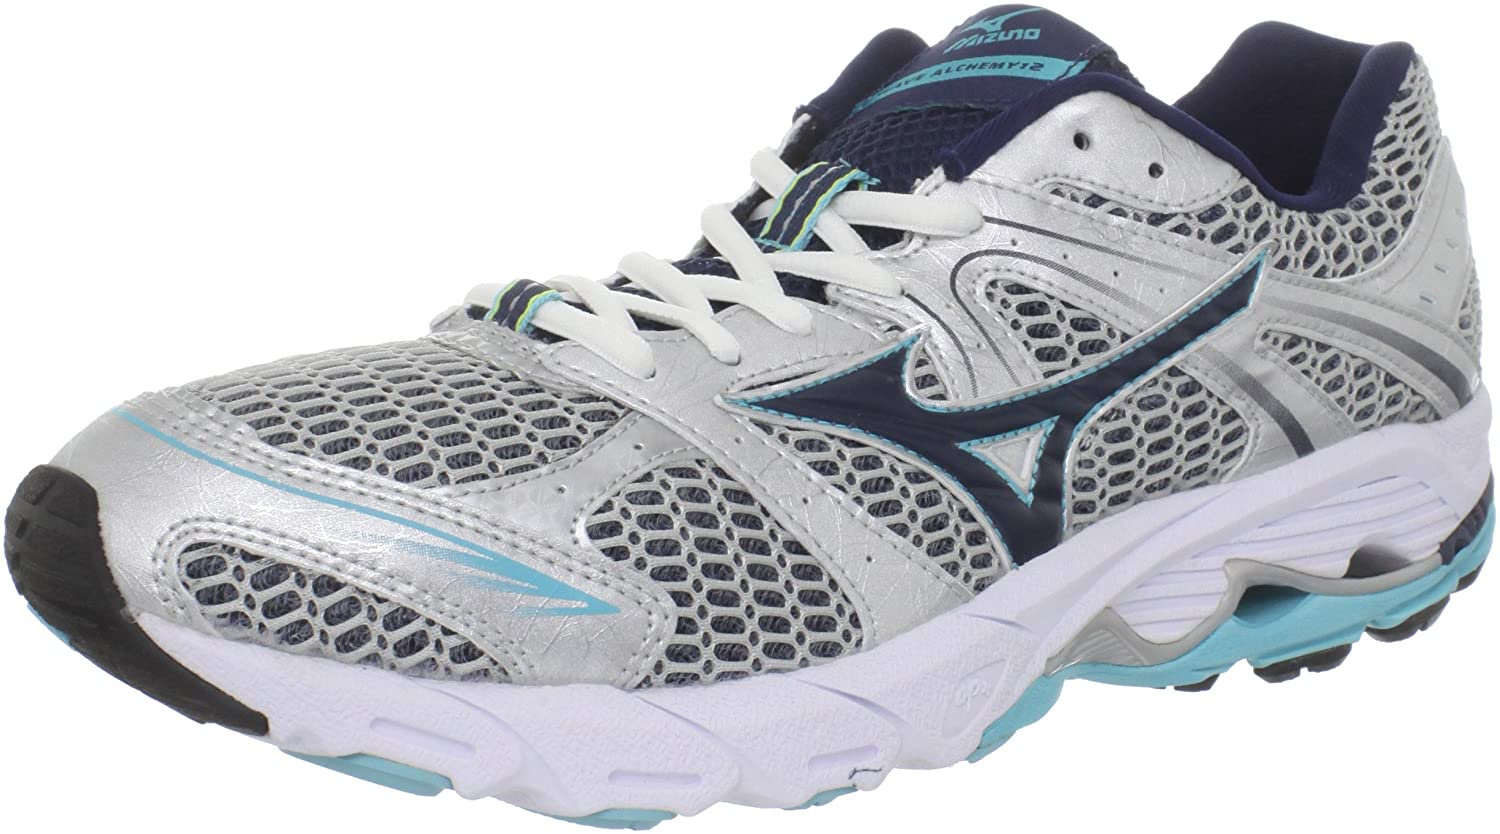 Women's Mizuno Wave Alchemy 12 Running Shoe for Plantar Fasciitis